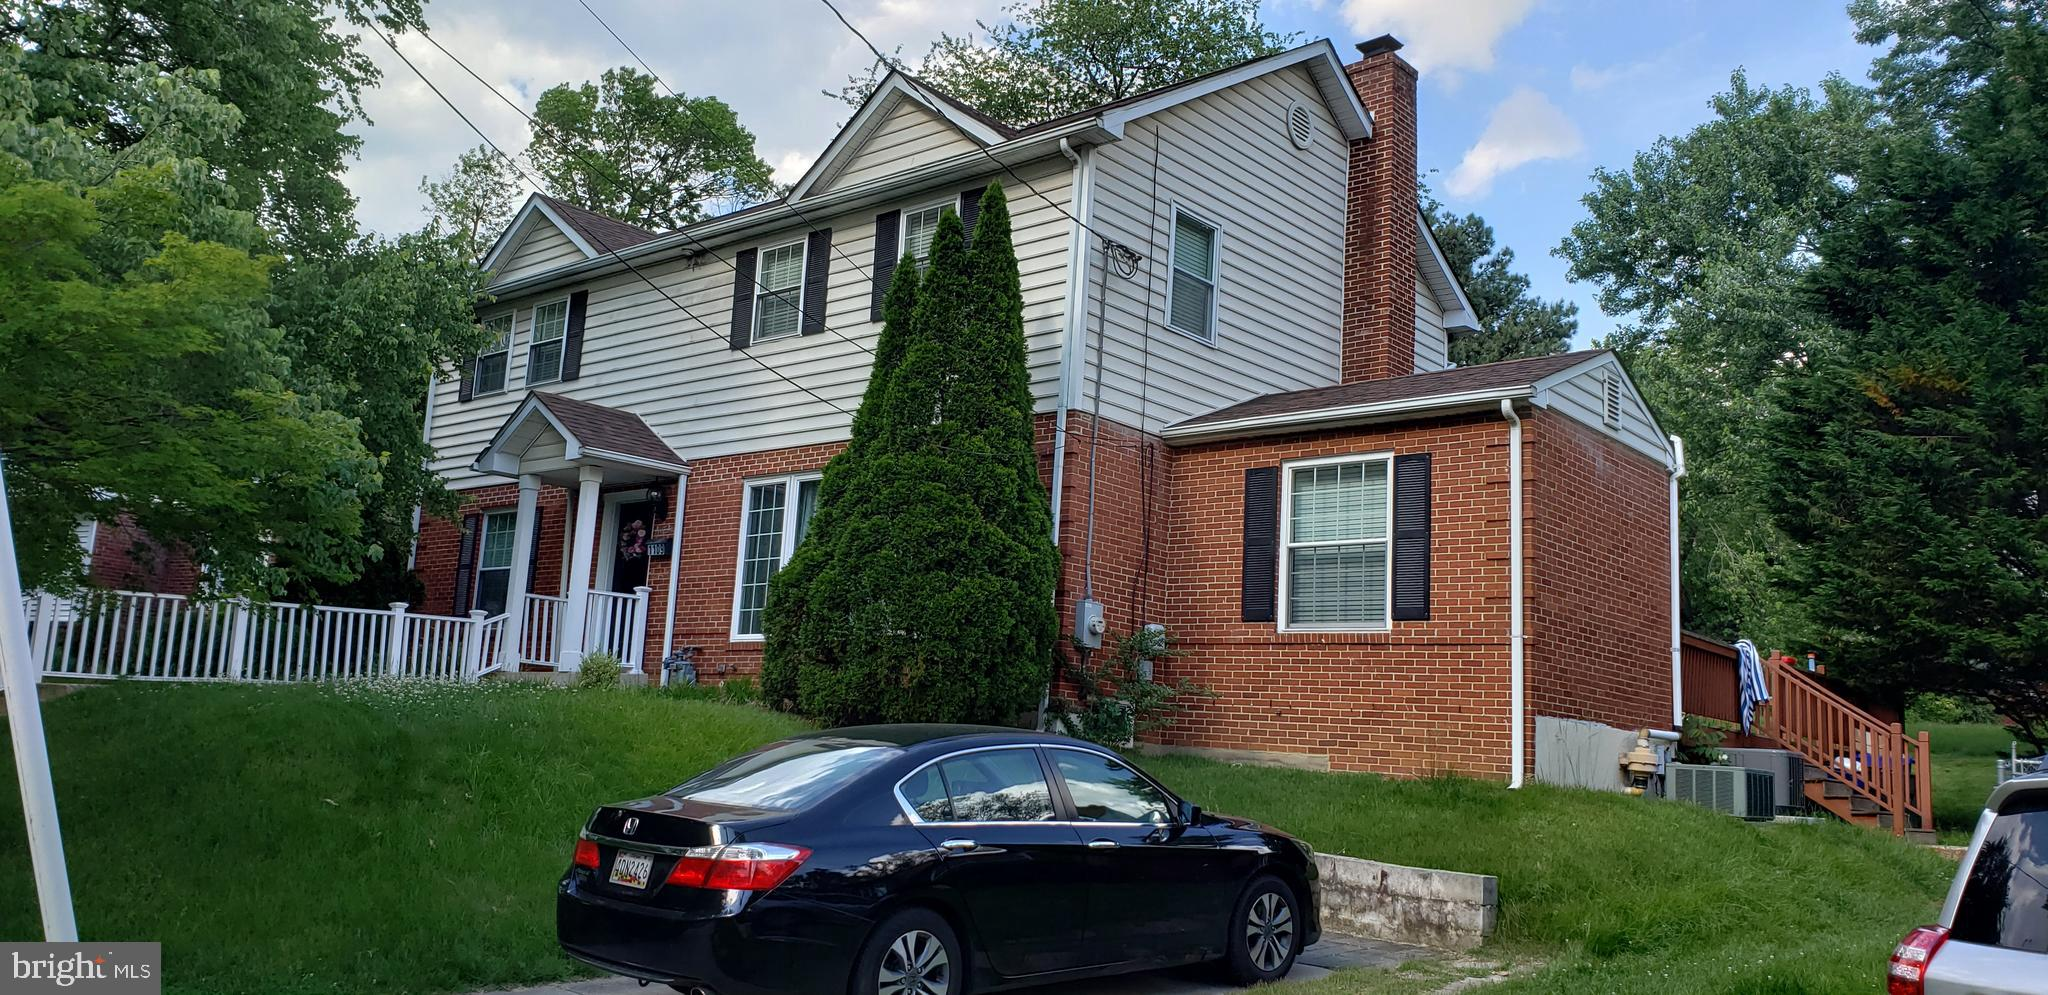 1109 W NOLCREST DRIVE, SILVER SPRING, MD 20903